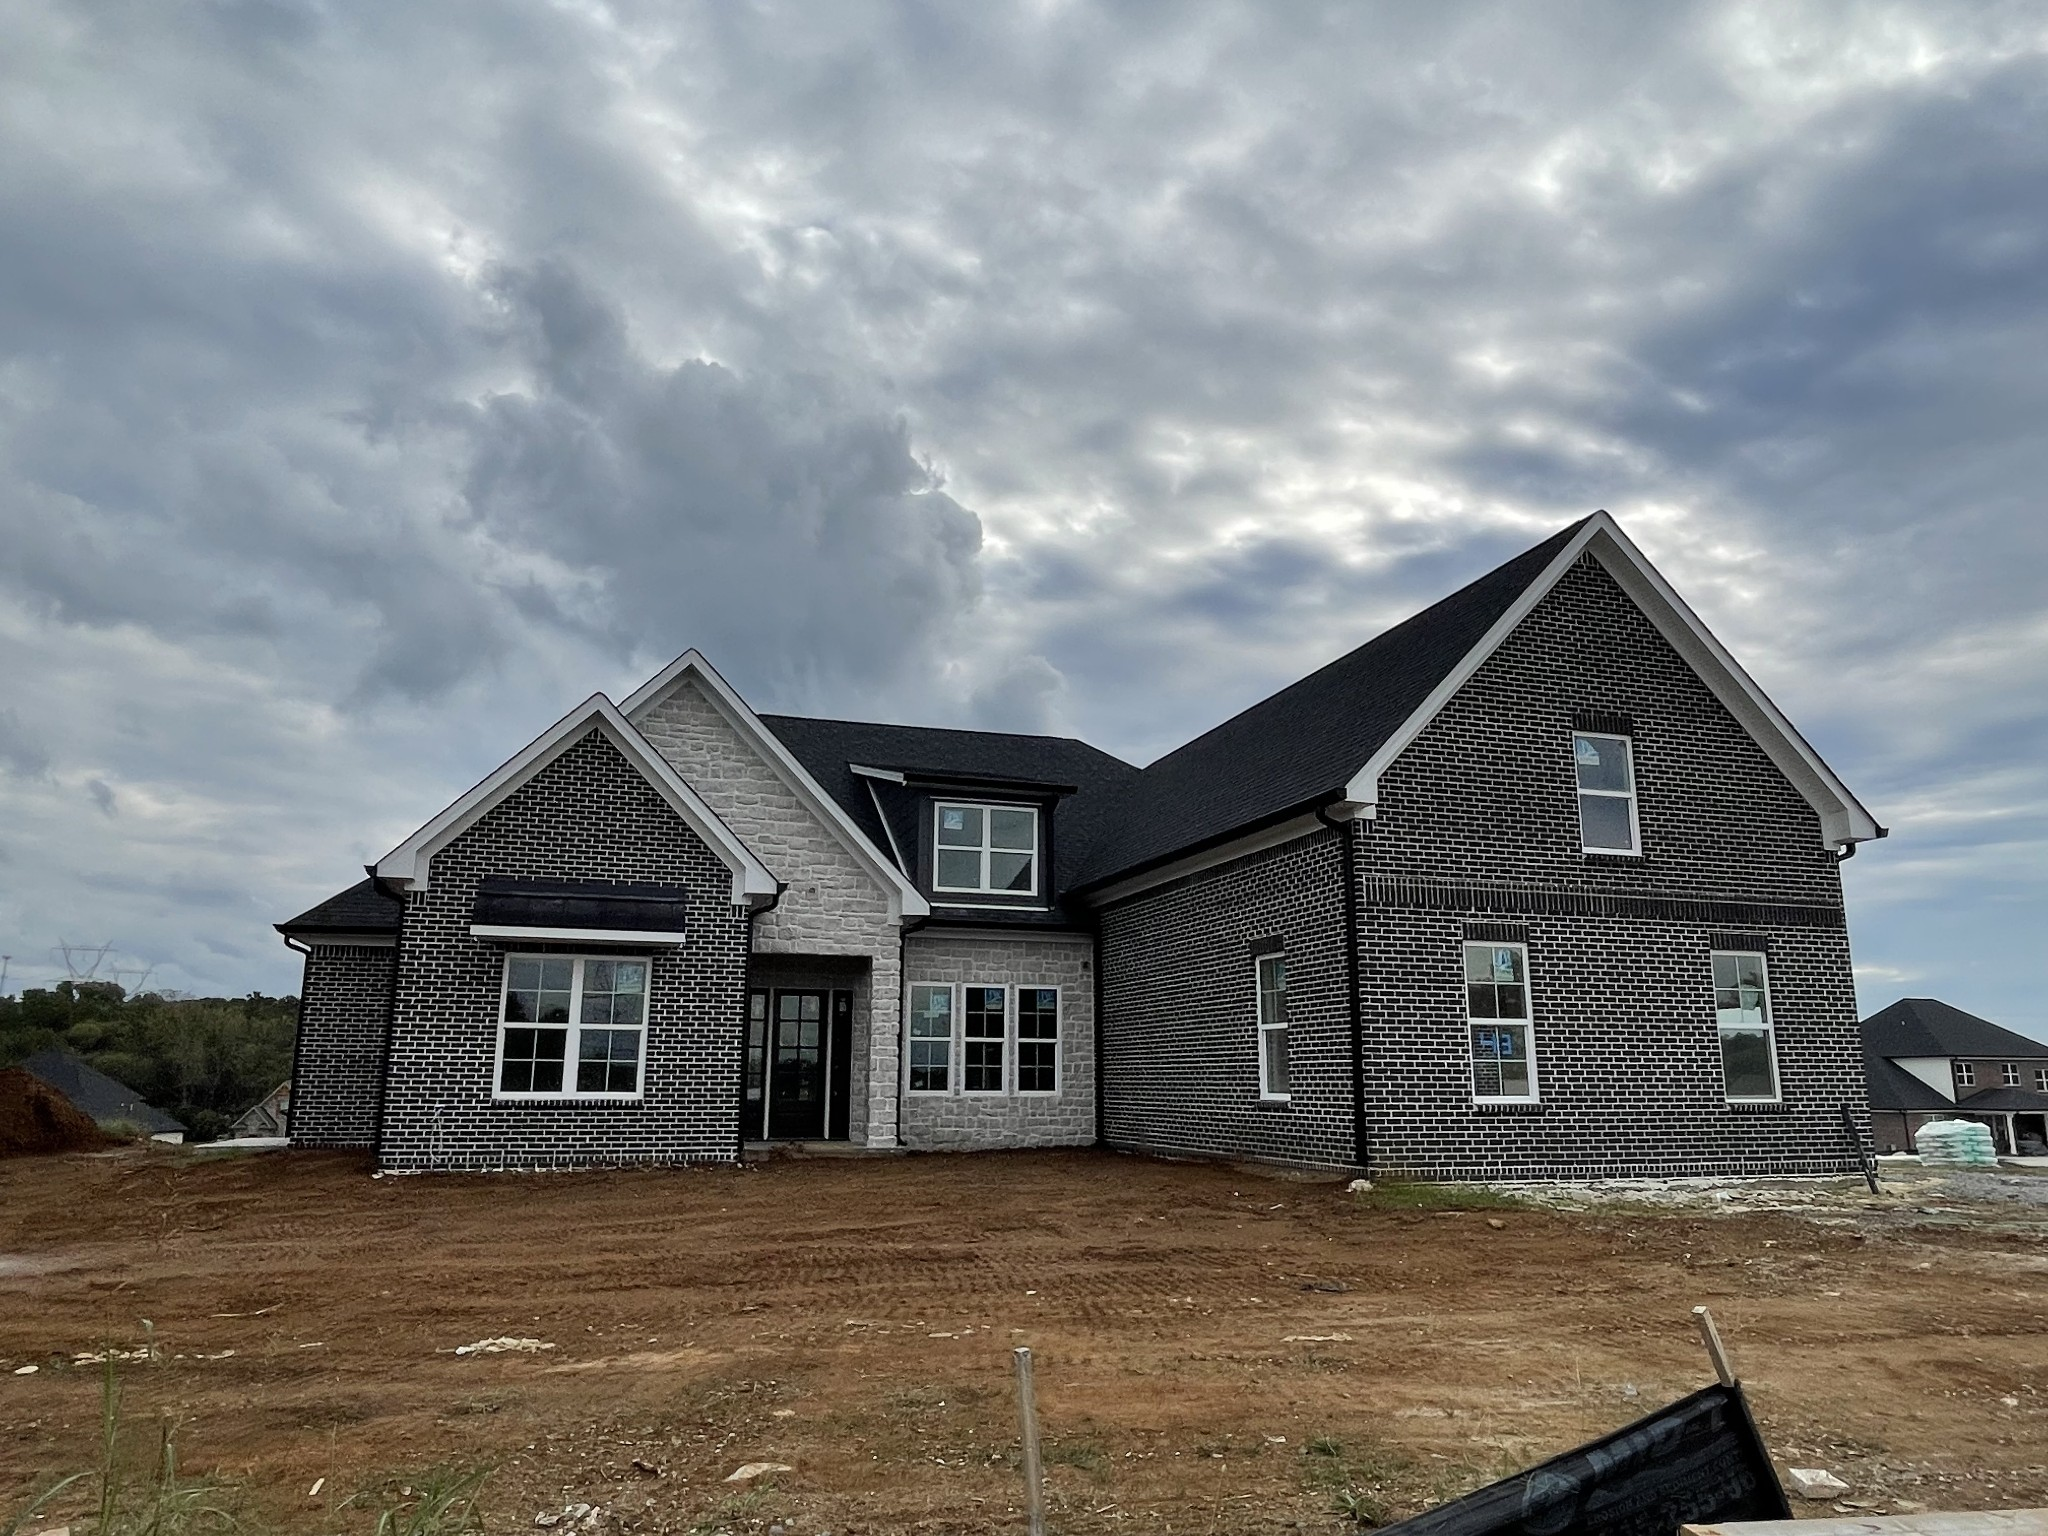 Check this one new one from Stillwater Construction out! New build on LARGE lot in Wilson Co, across the street from the lake! Great Neighborhood, Great Views, and still convenient to all Mt Juliet has to offer! 5 beds with 3 of them on the main level!!